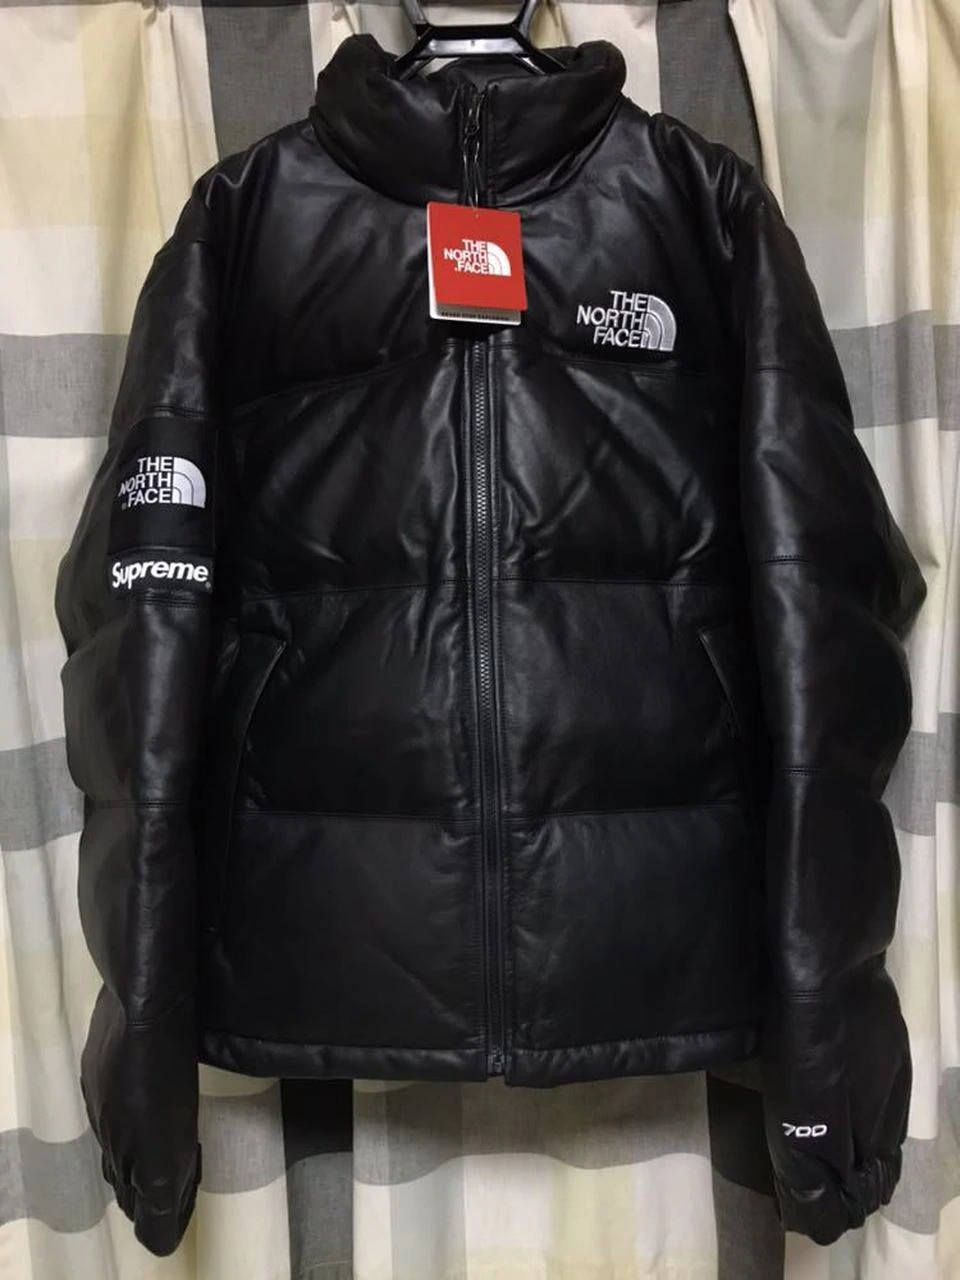 Supreme The North Face Leather Nuptse Jacket Black Nuptse Jacket Jackets The North Face [ 1280 x 960 Pixel ]